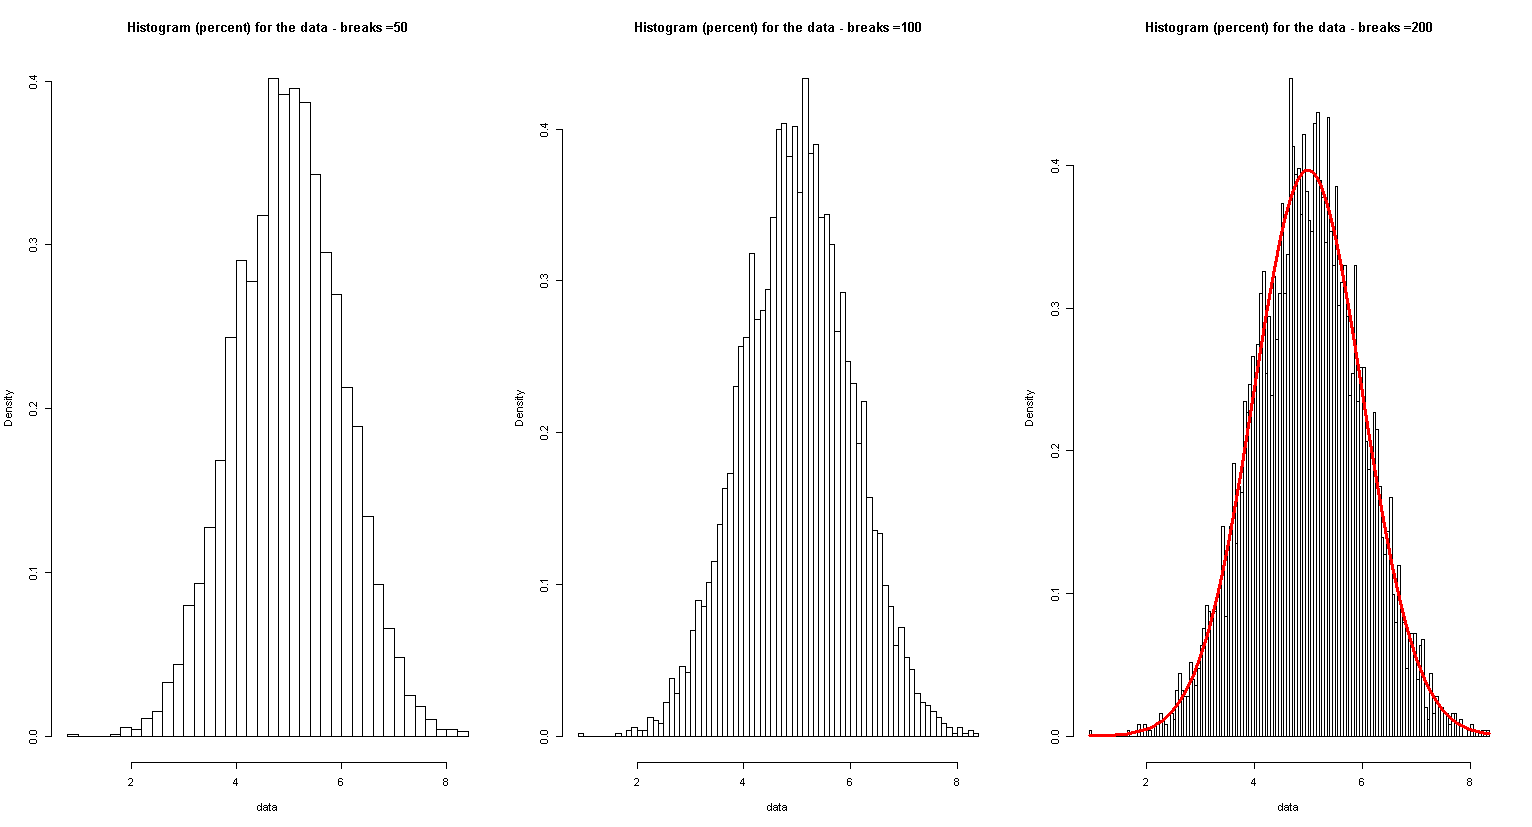 A few histograms for the same set of data